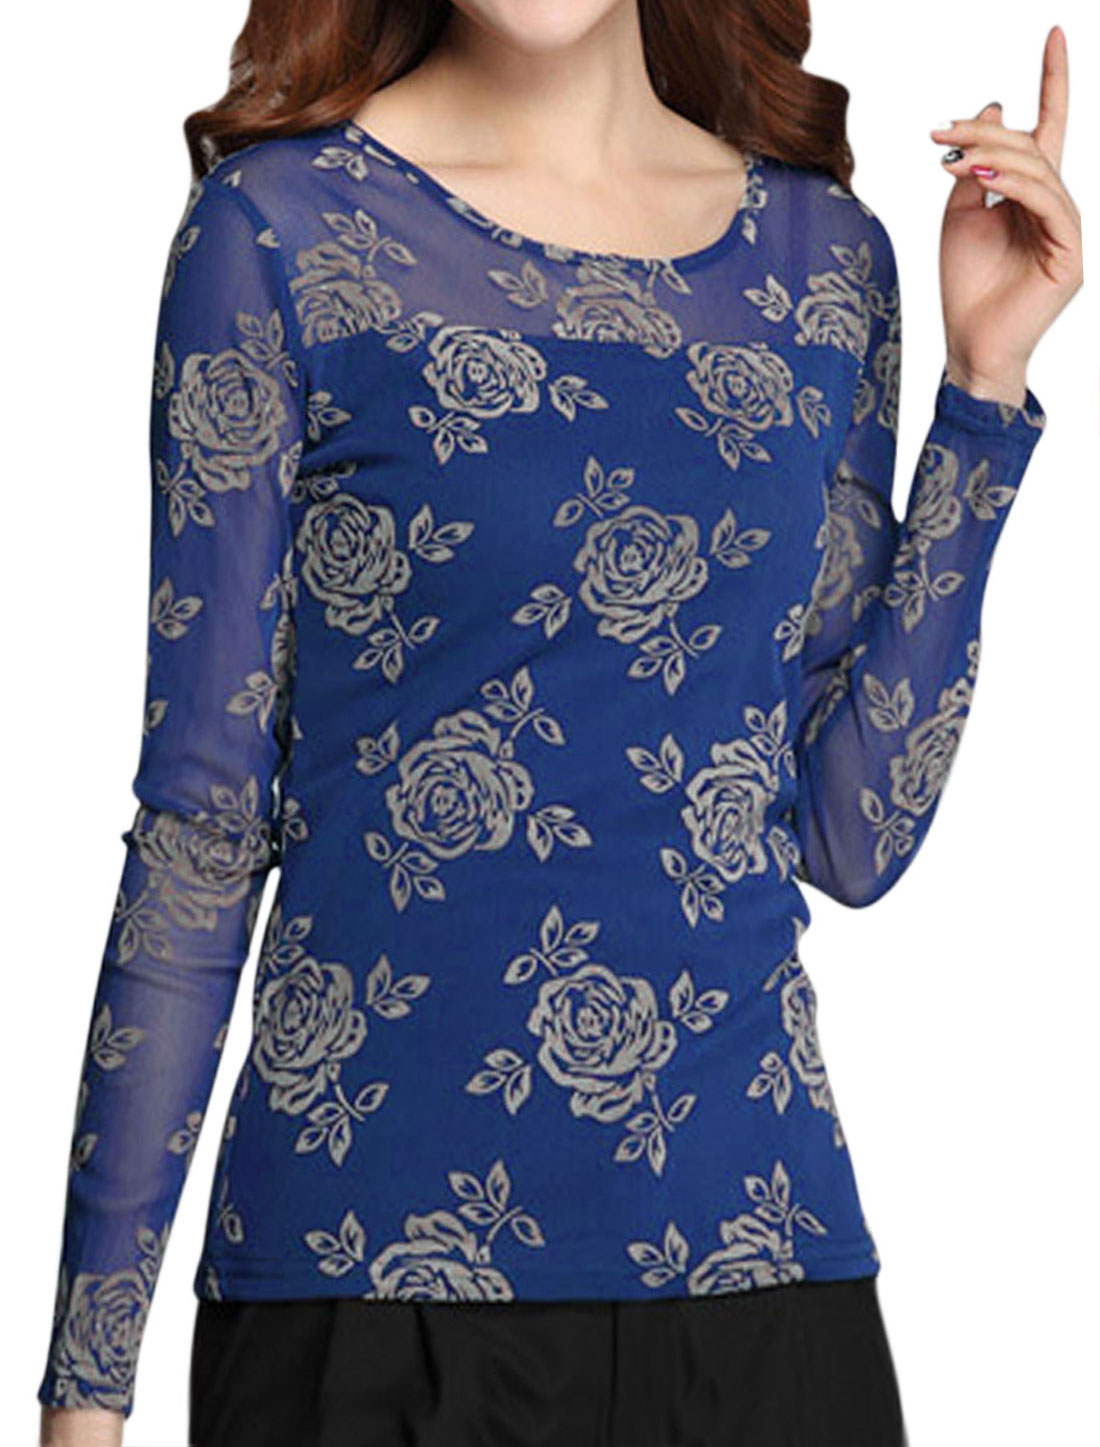 Lady Mesh Panel Floral Prints Shiny Design T-Shirt Sand Blue M